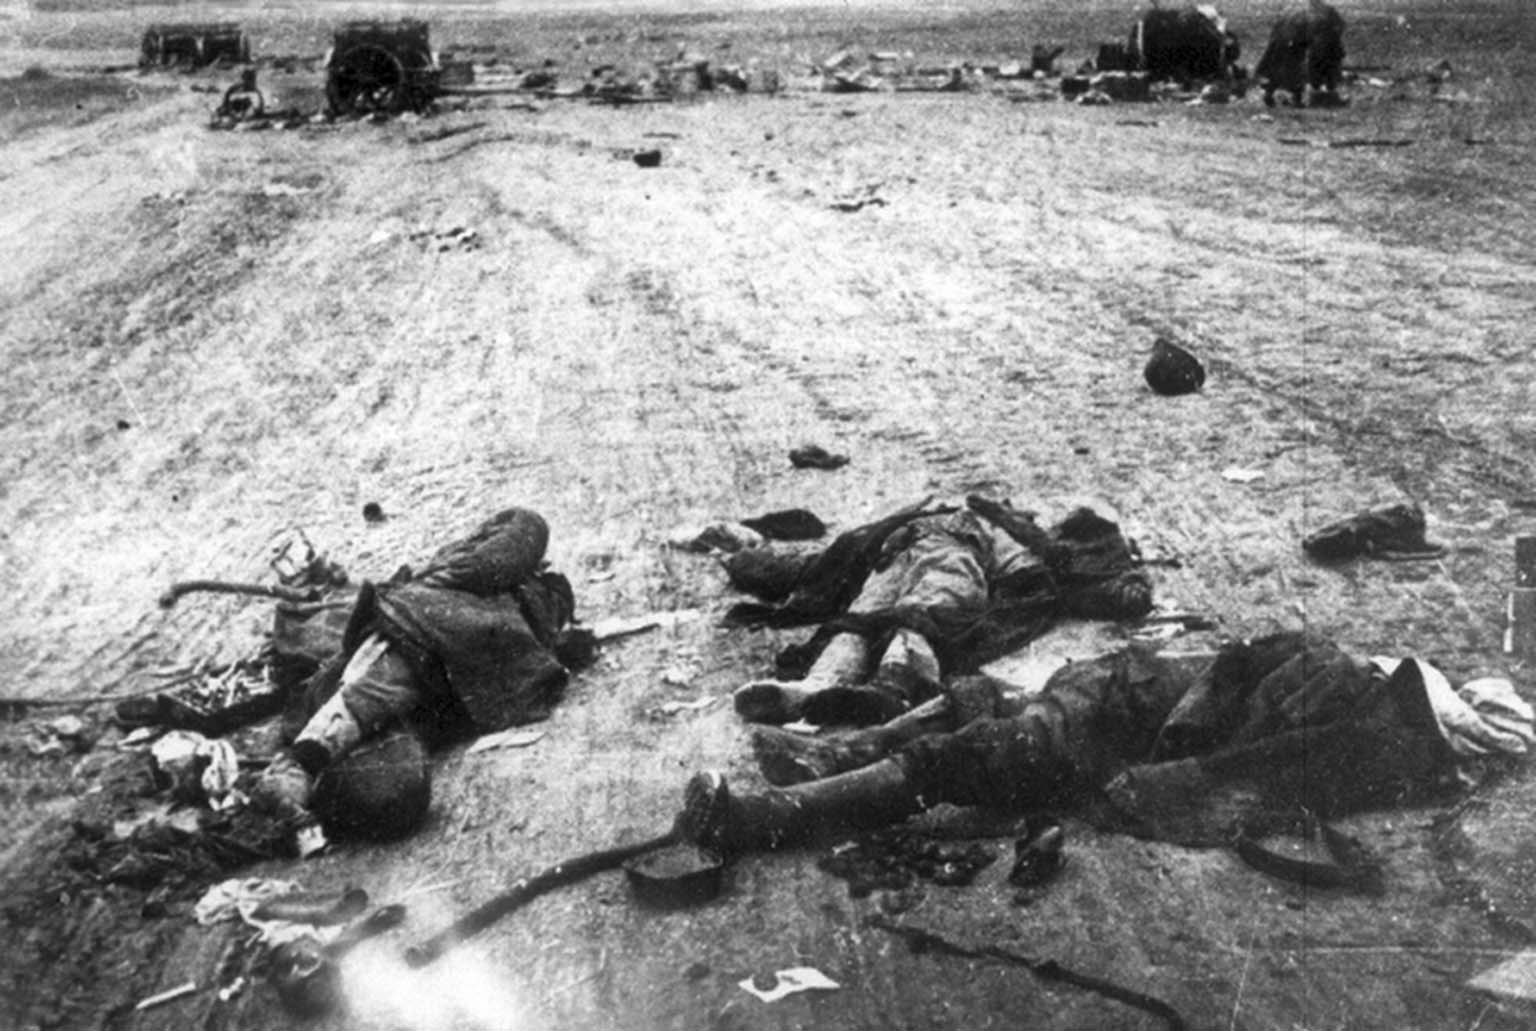 Corpses of Romanian soldiers